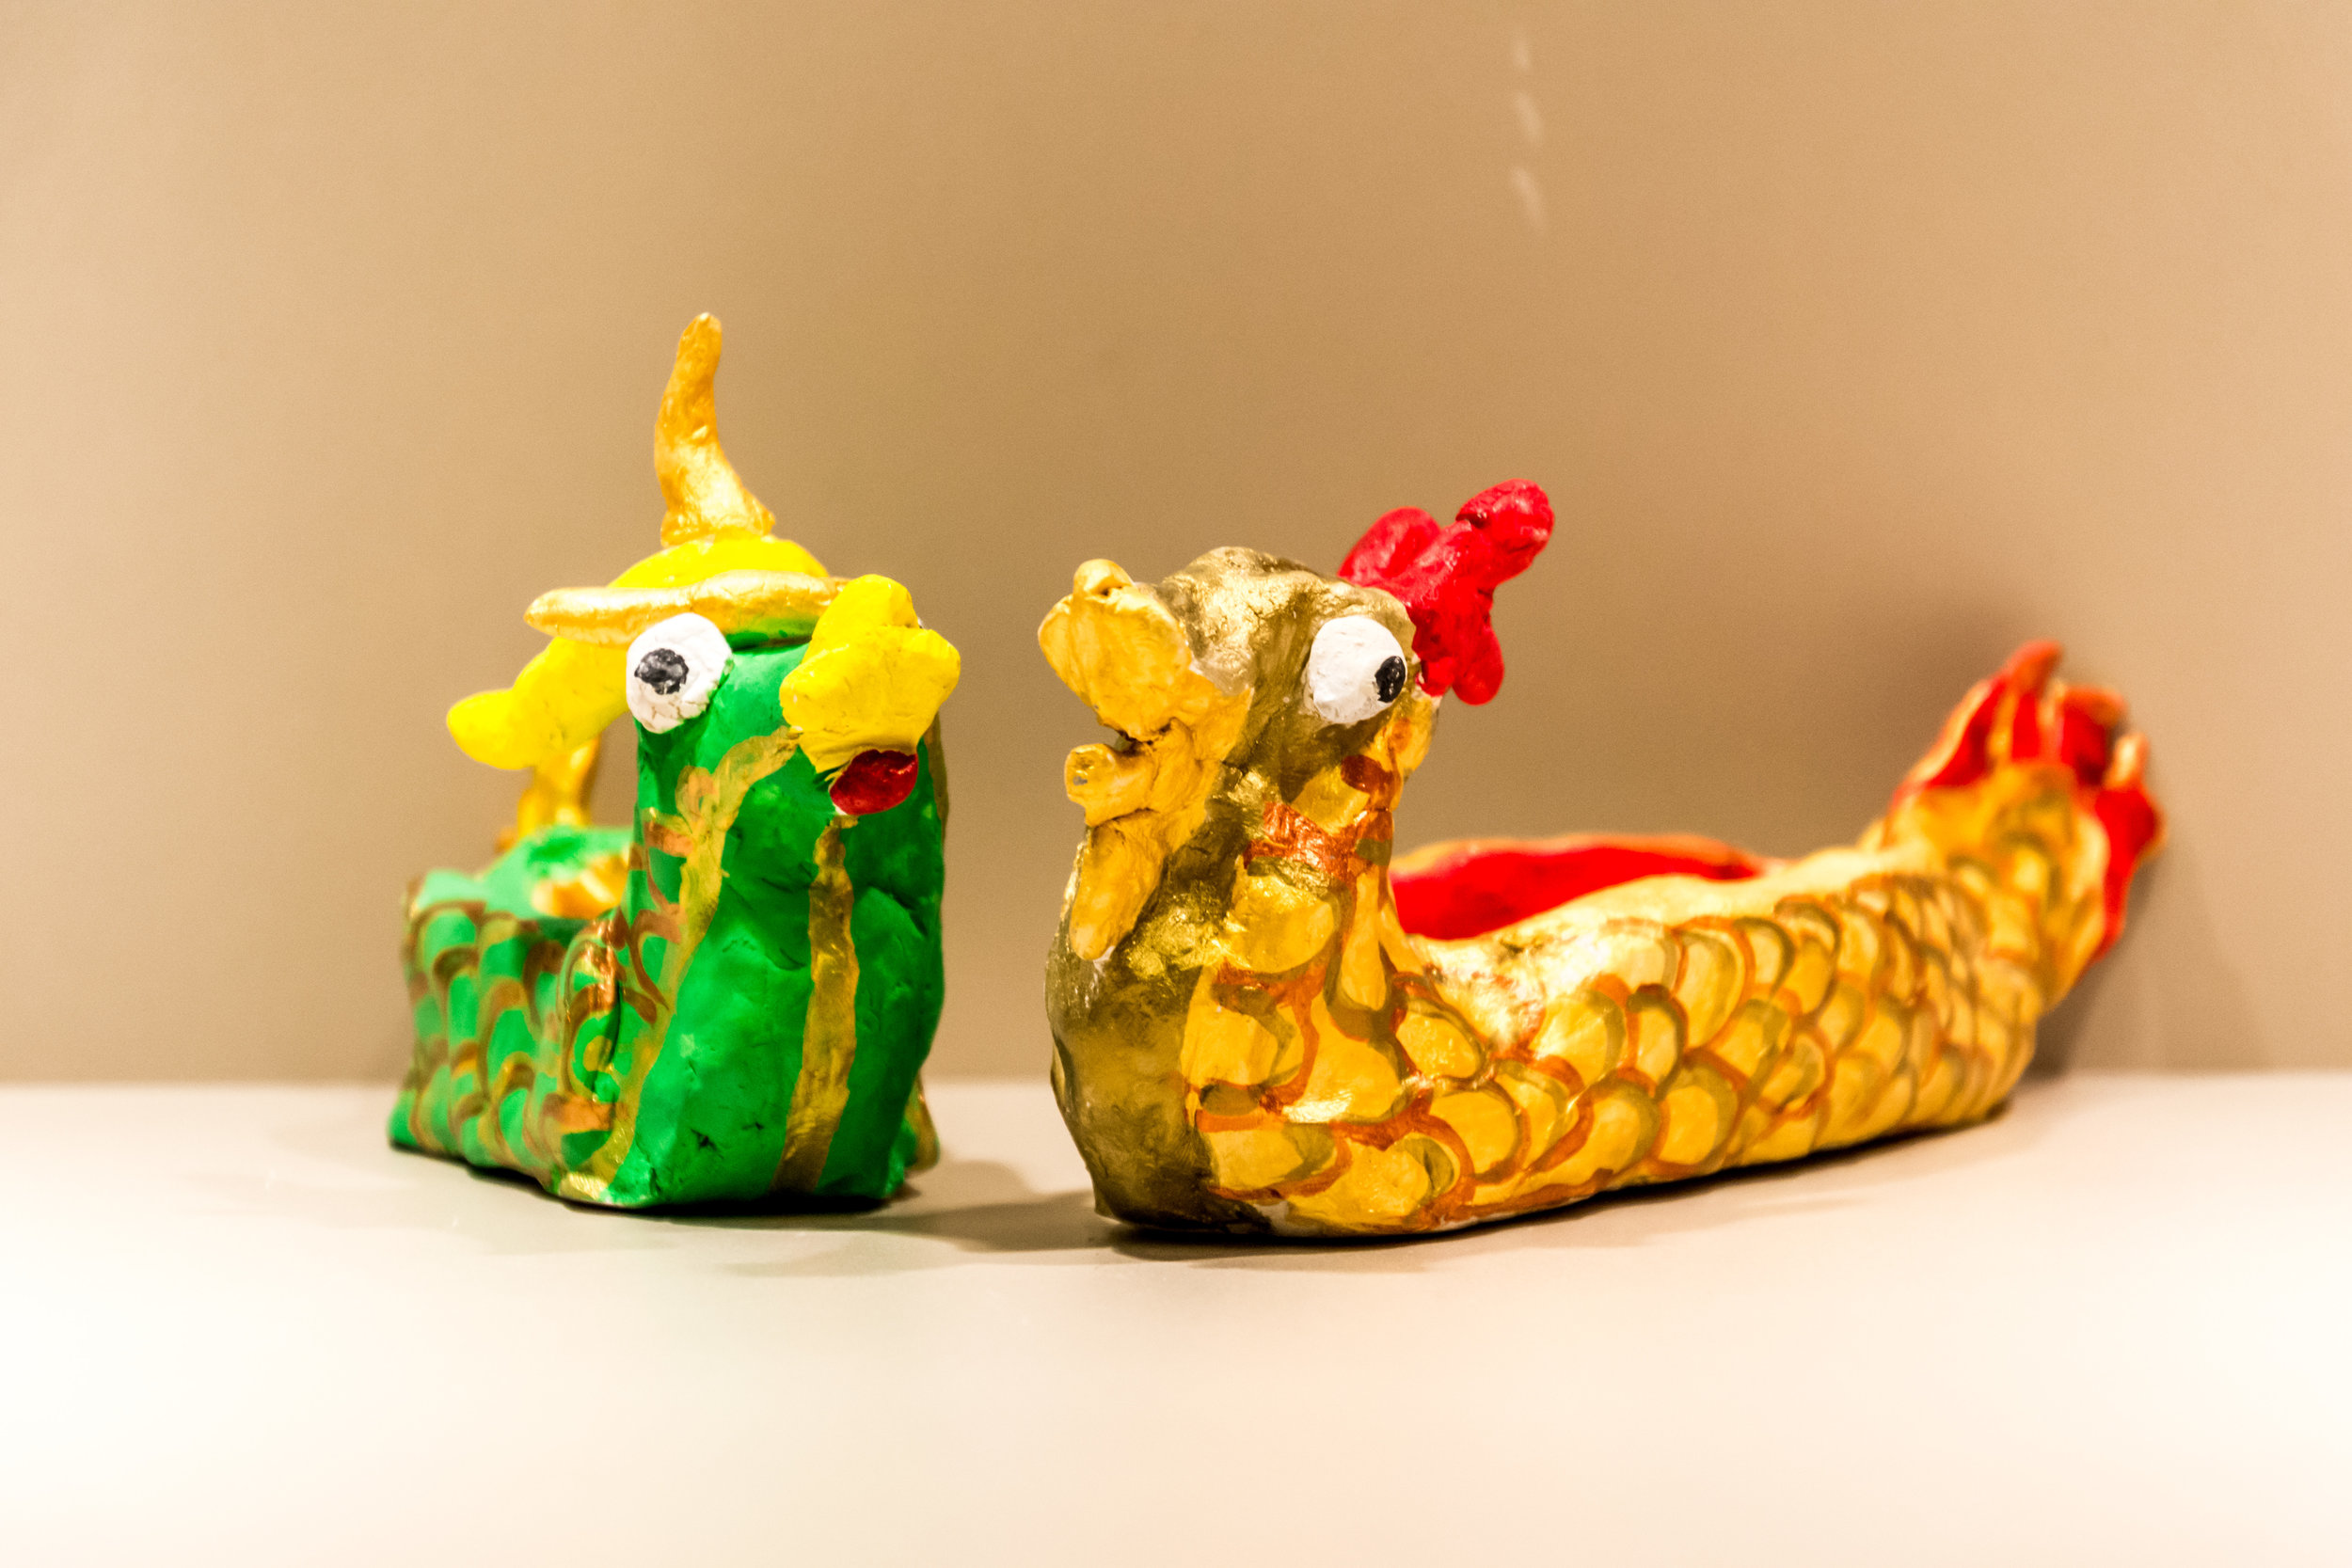 Photo Description: Two dragon boats with a green on with gold trimming one the left and a gold with red trimming one on the right.